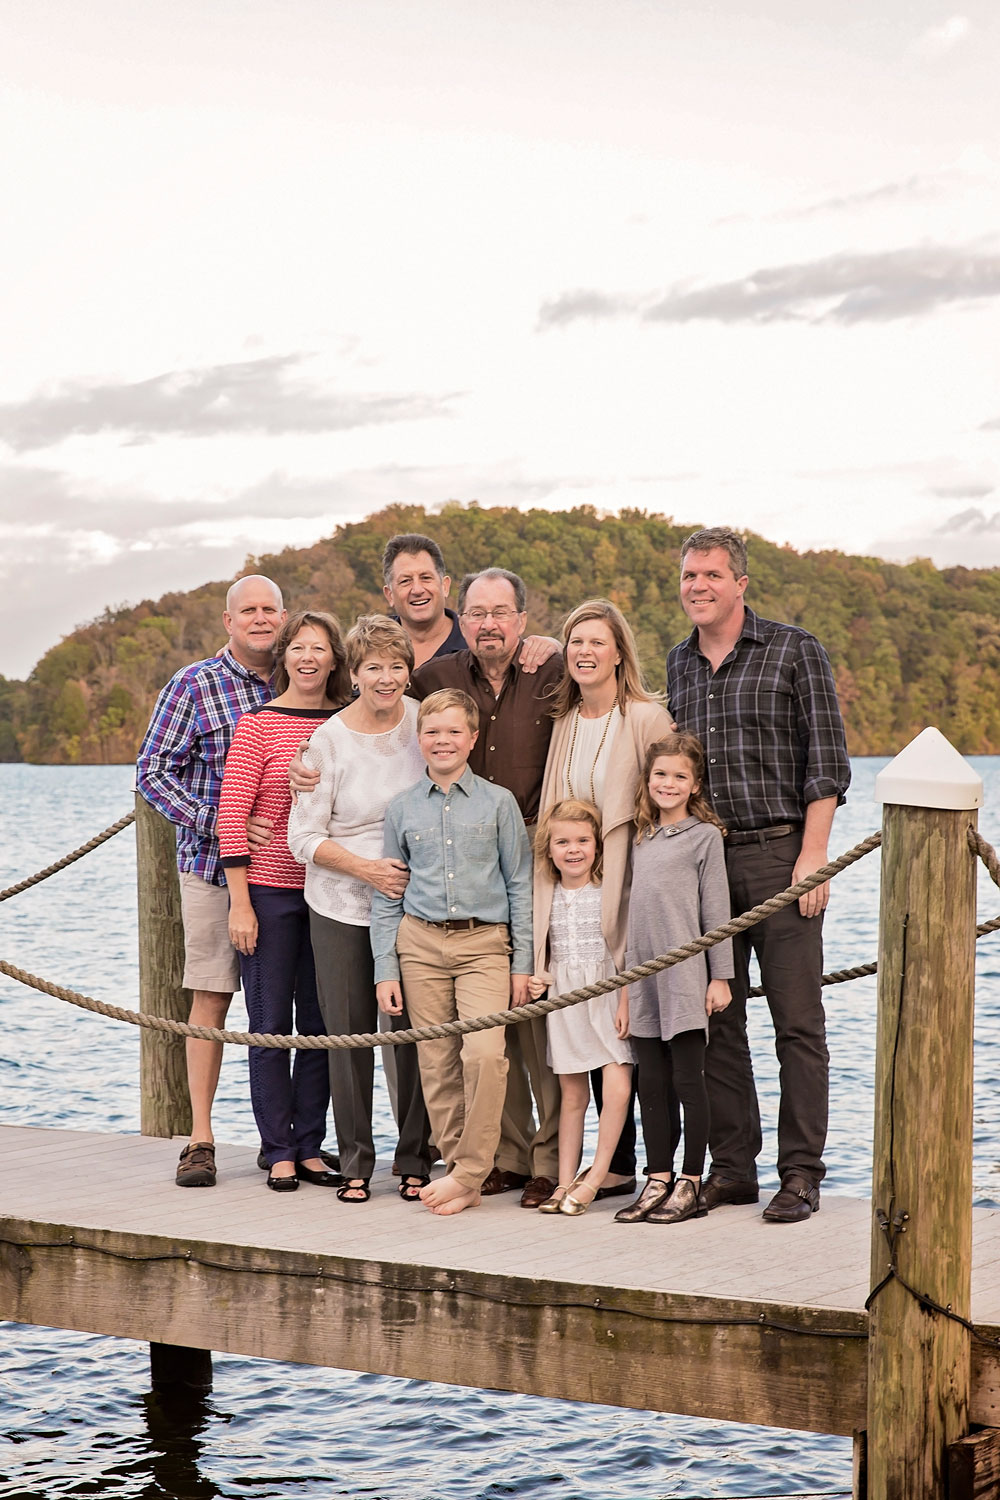 Tellico-village-photographer-loudon-photography-lake-family-picture.jpg